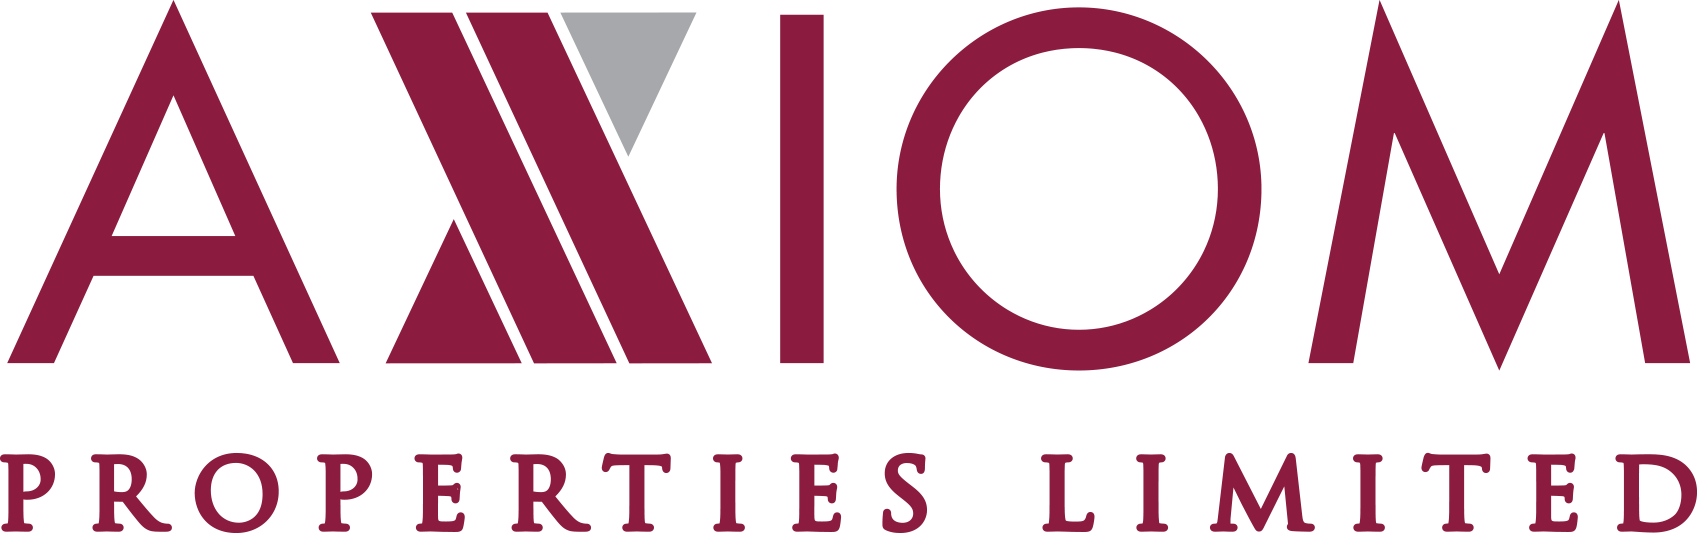 Axiom Properties Limited